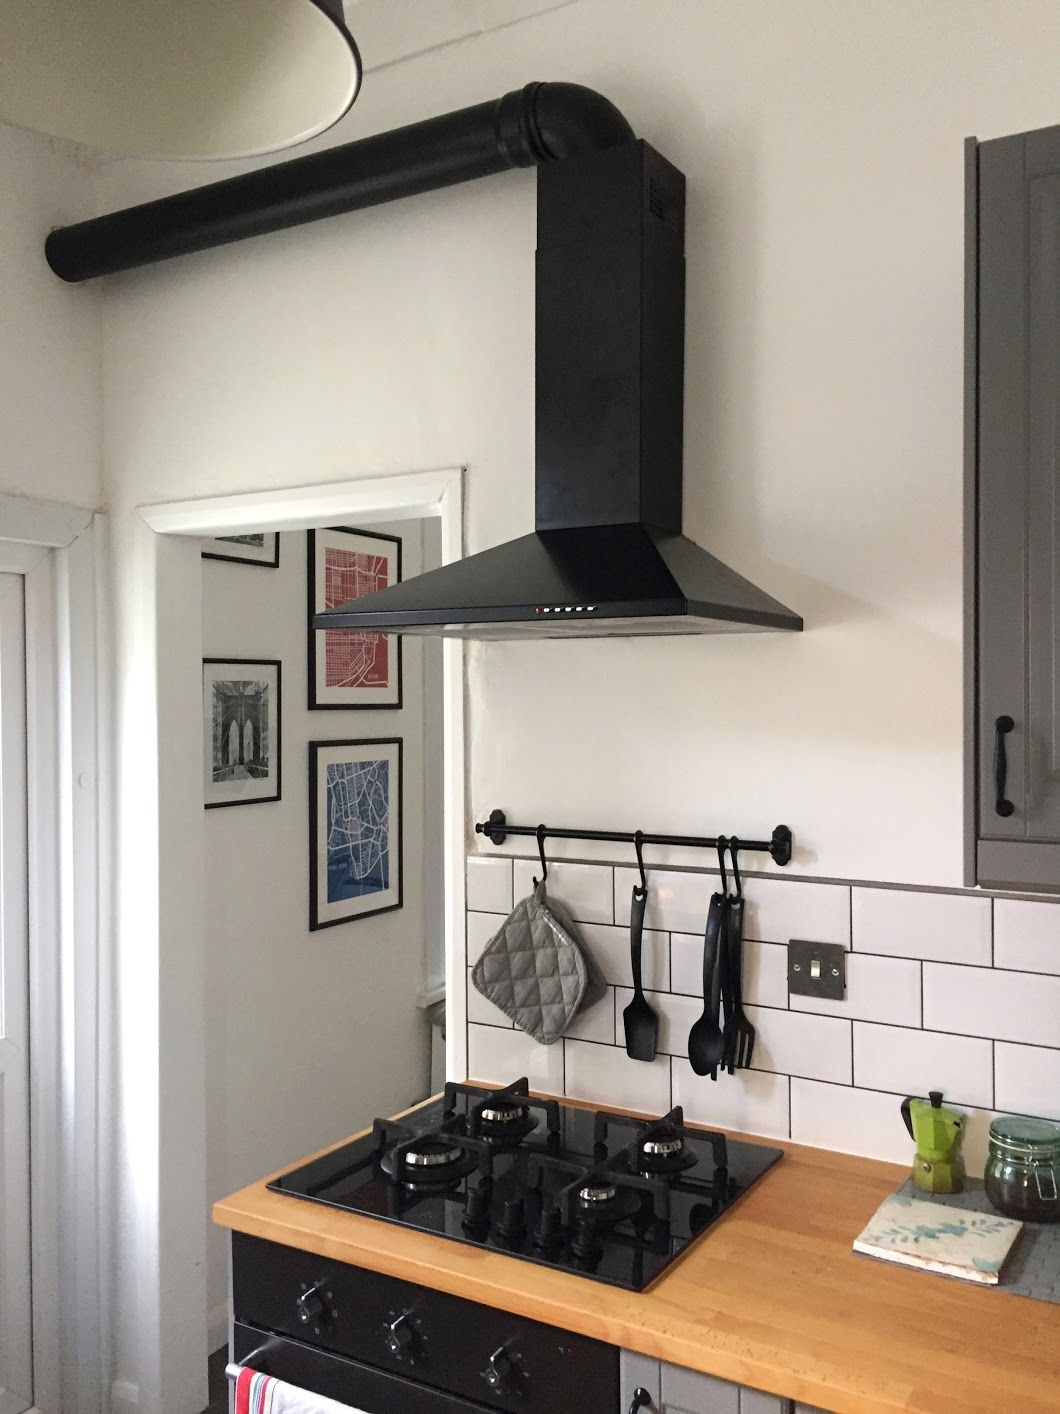 Charmant Kitchen Idea Cast Iron Down Pipe Gutter Used As Extractor Hood Pipe